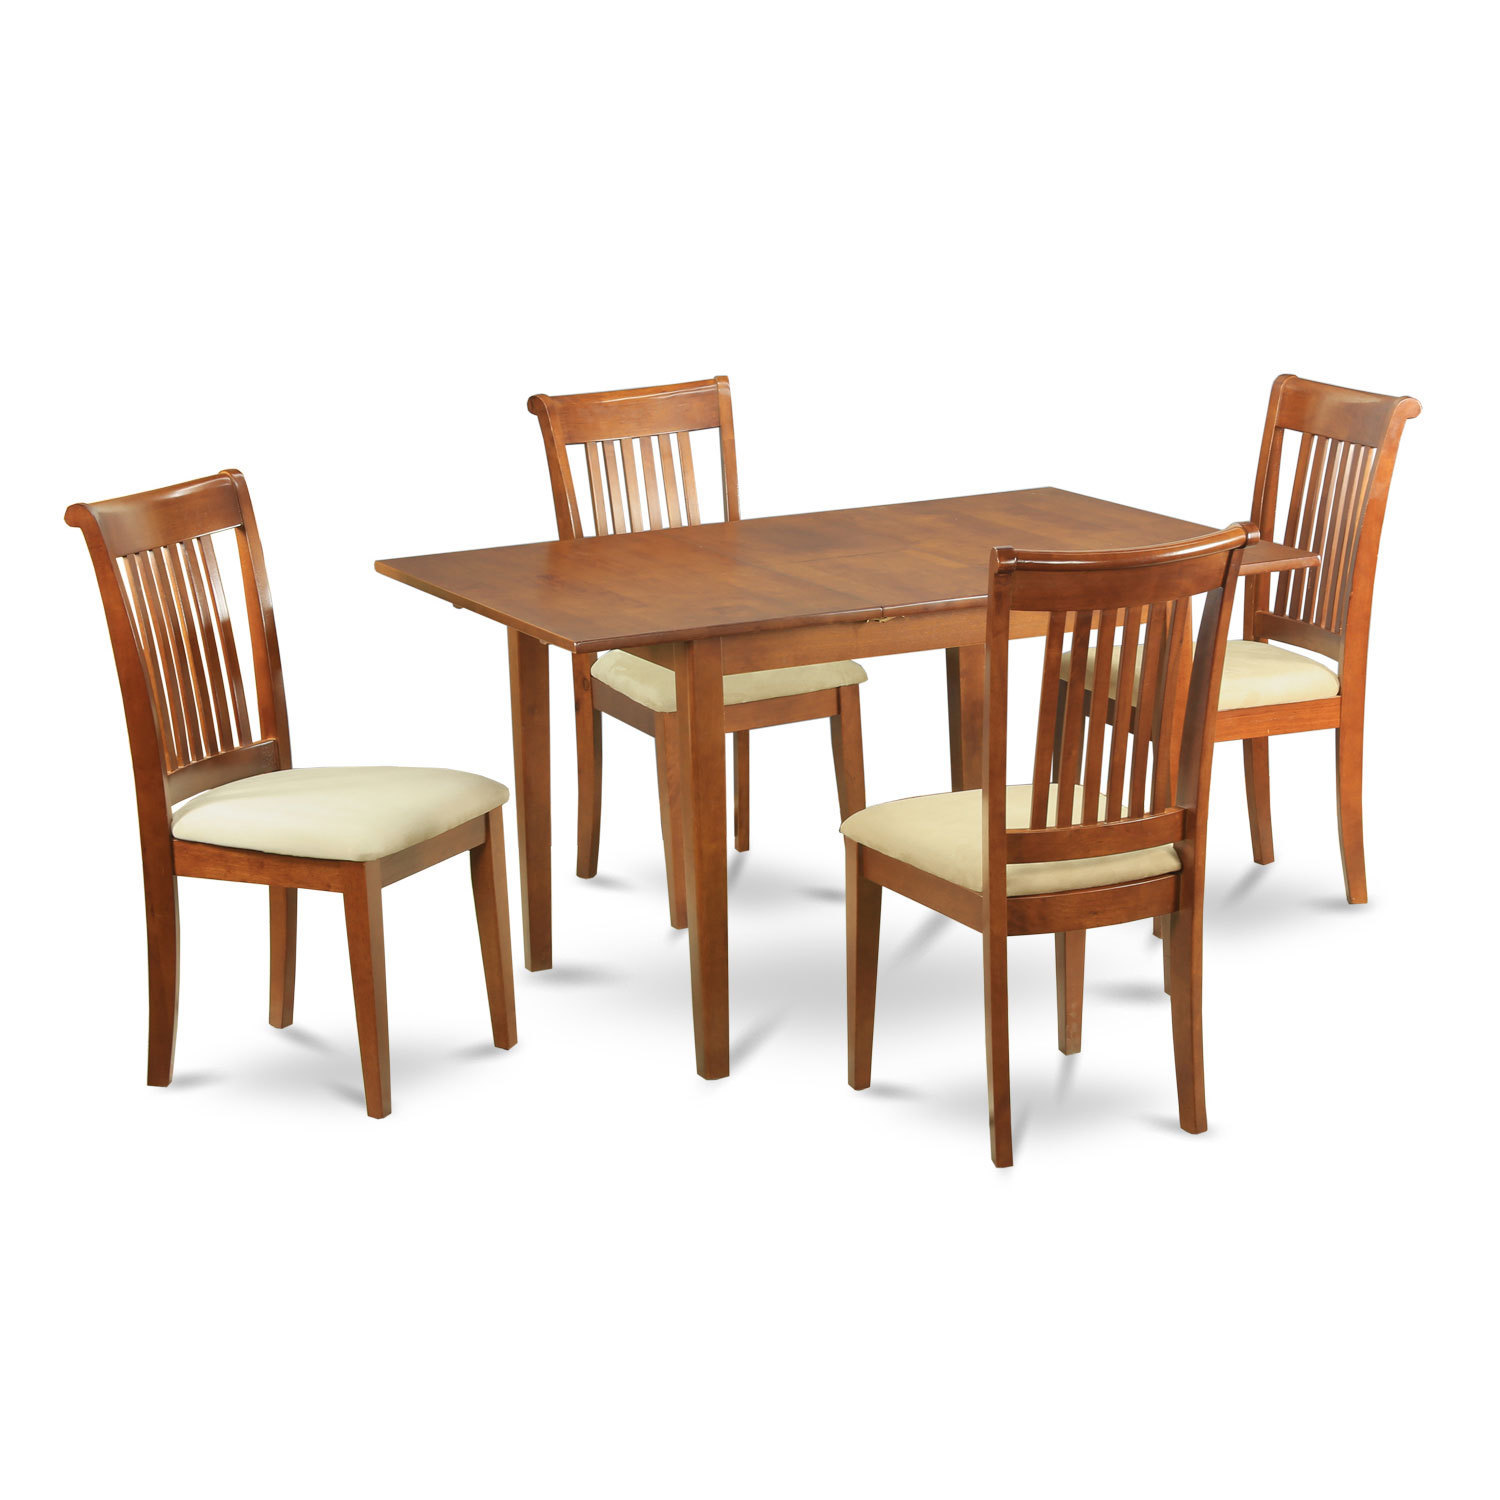 Small dinette set design homesfeed for Small dining set with bench